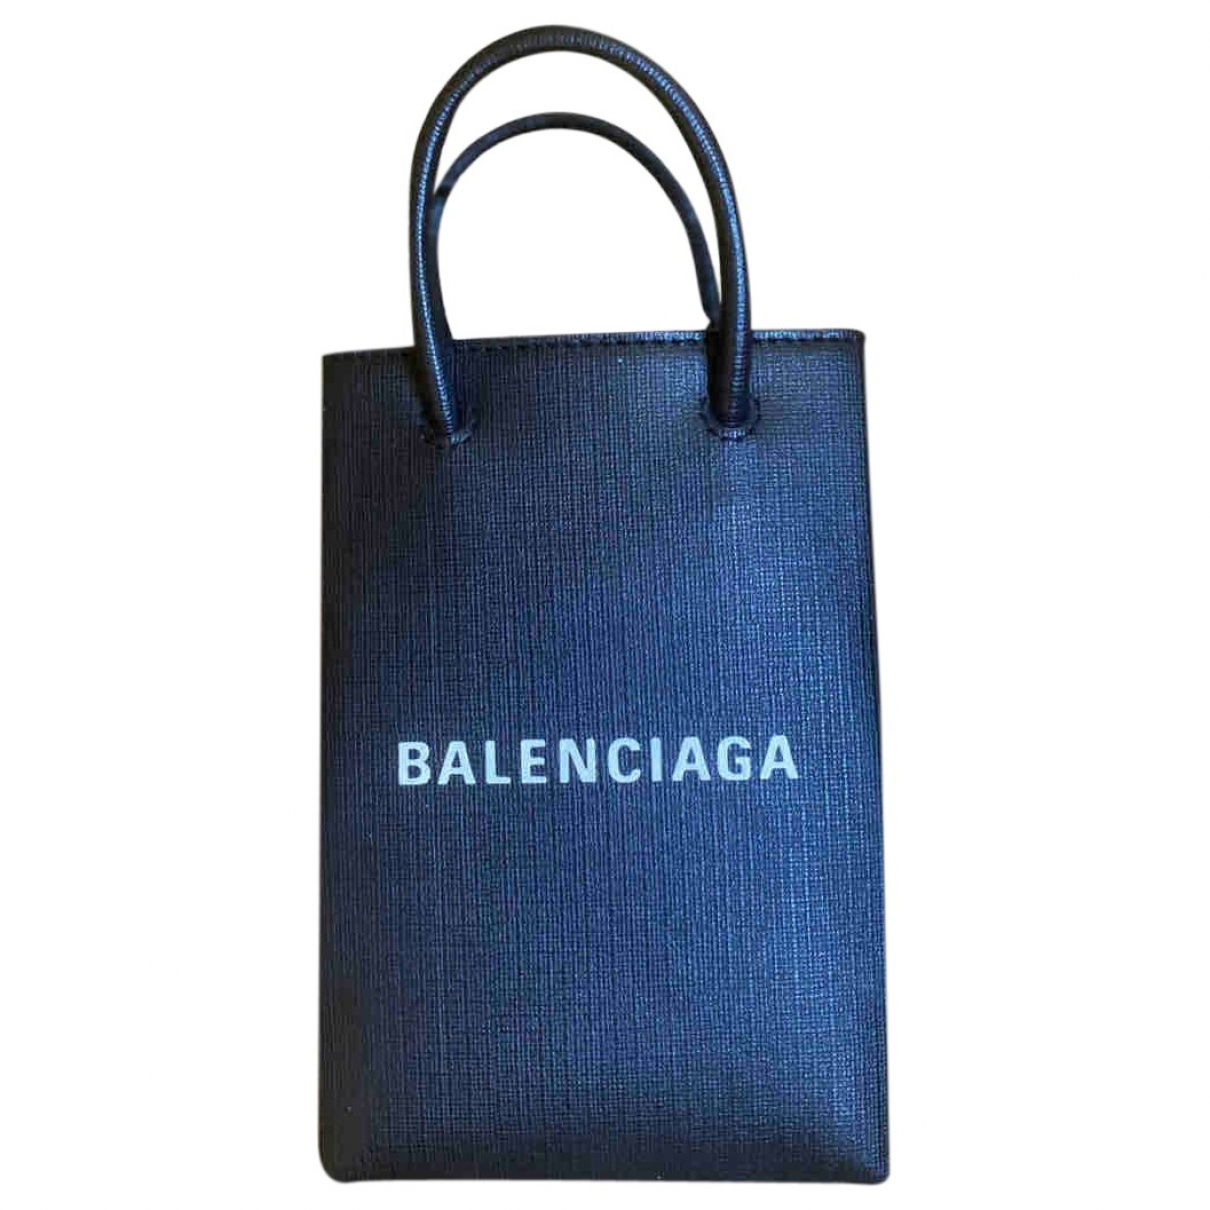 Balenciaga Eveyday Cabas Black Leather handbag for Women \N